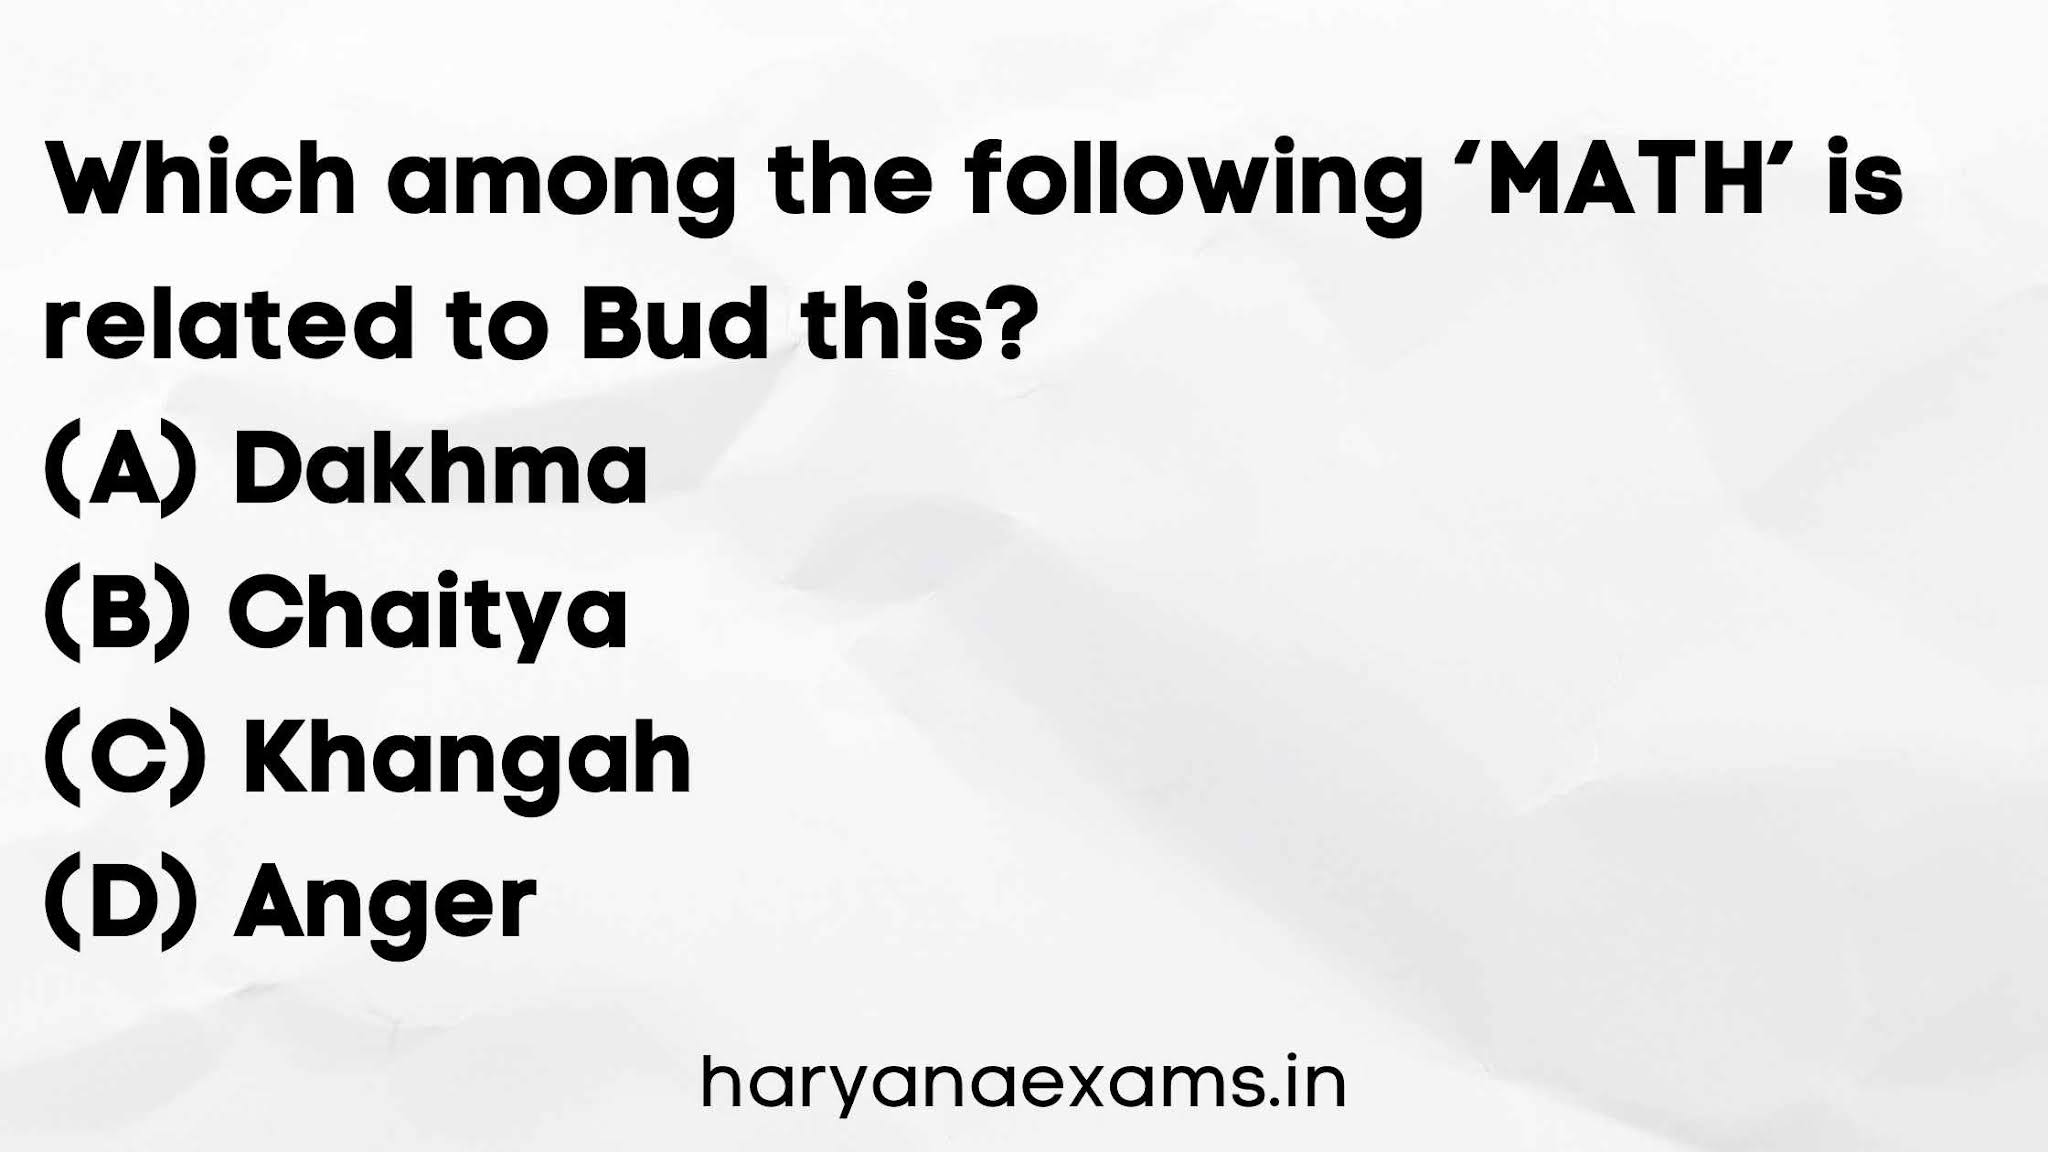 Which among the following 'MATH' is related to Bud this?   (A) Dakhma   (B) Chaitya   (C) Khangah   (D) Anger